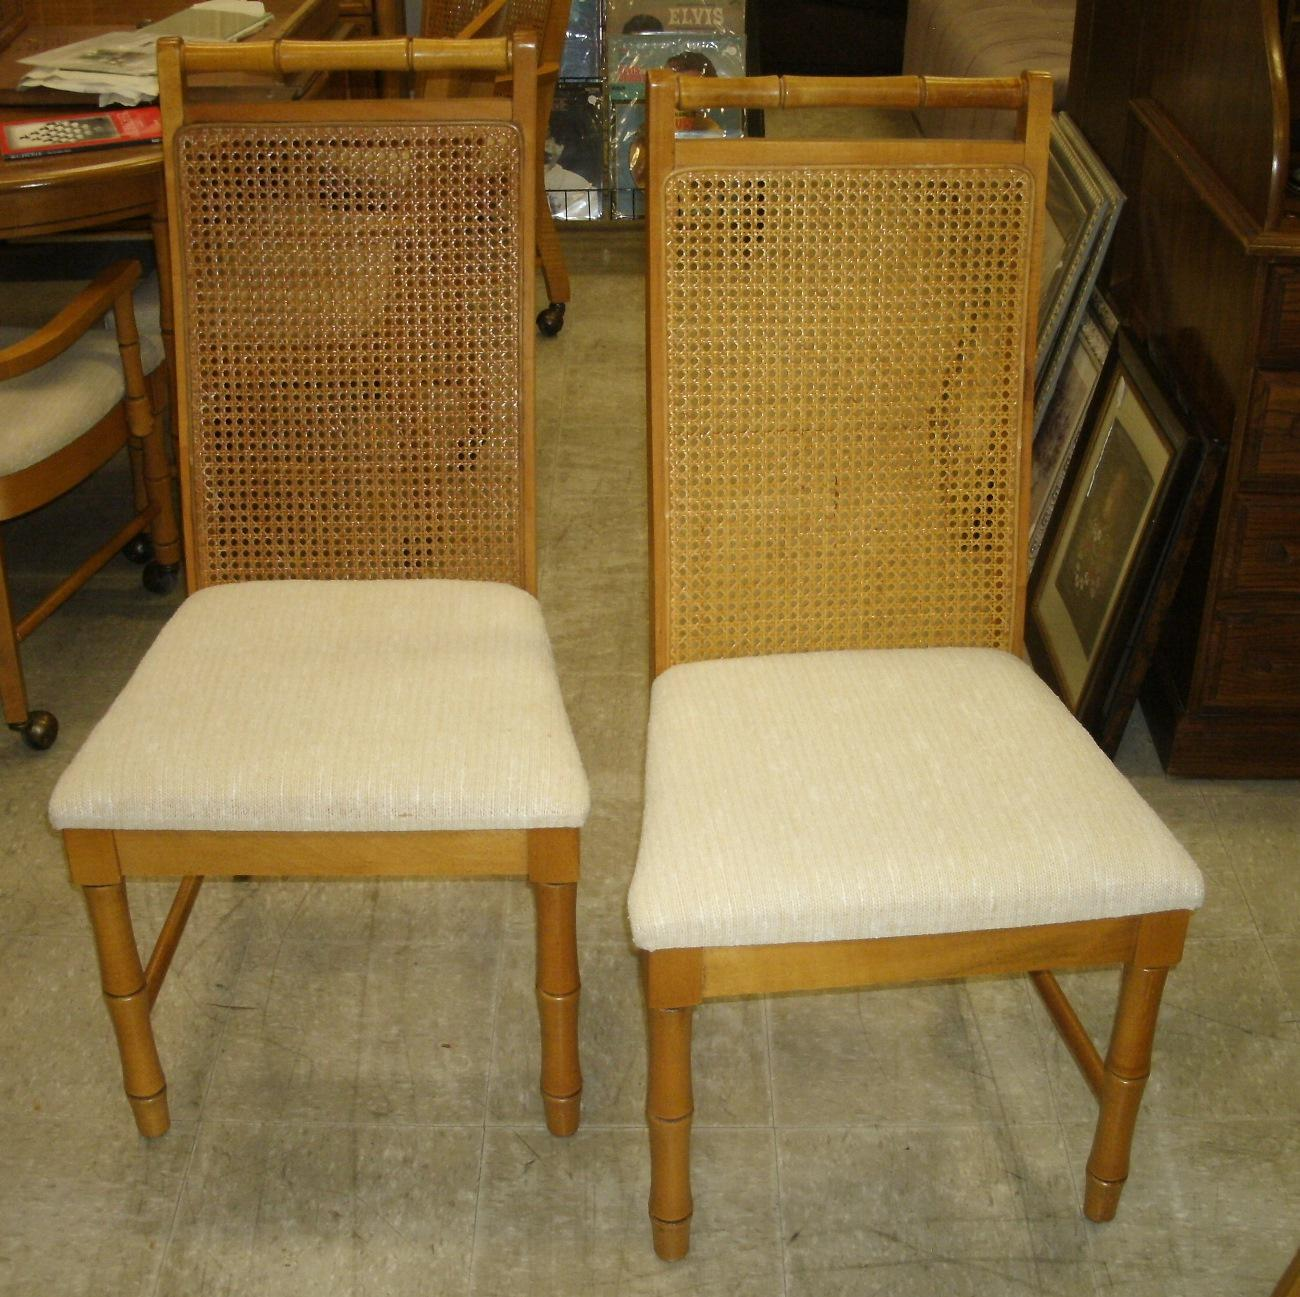 broyhill cane back dining room chairs blogs workanyware co uk u2022 rh blogs workanyware co uk Basement Waterproofing Business Dog